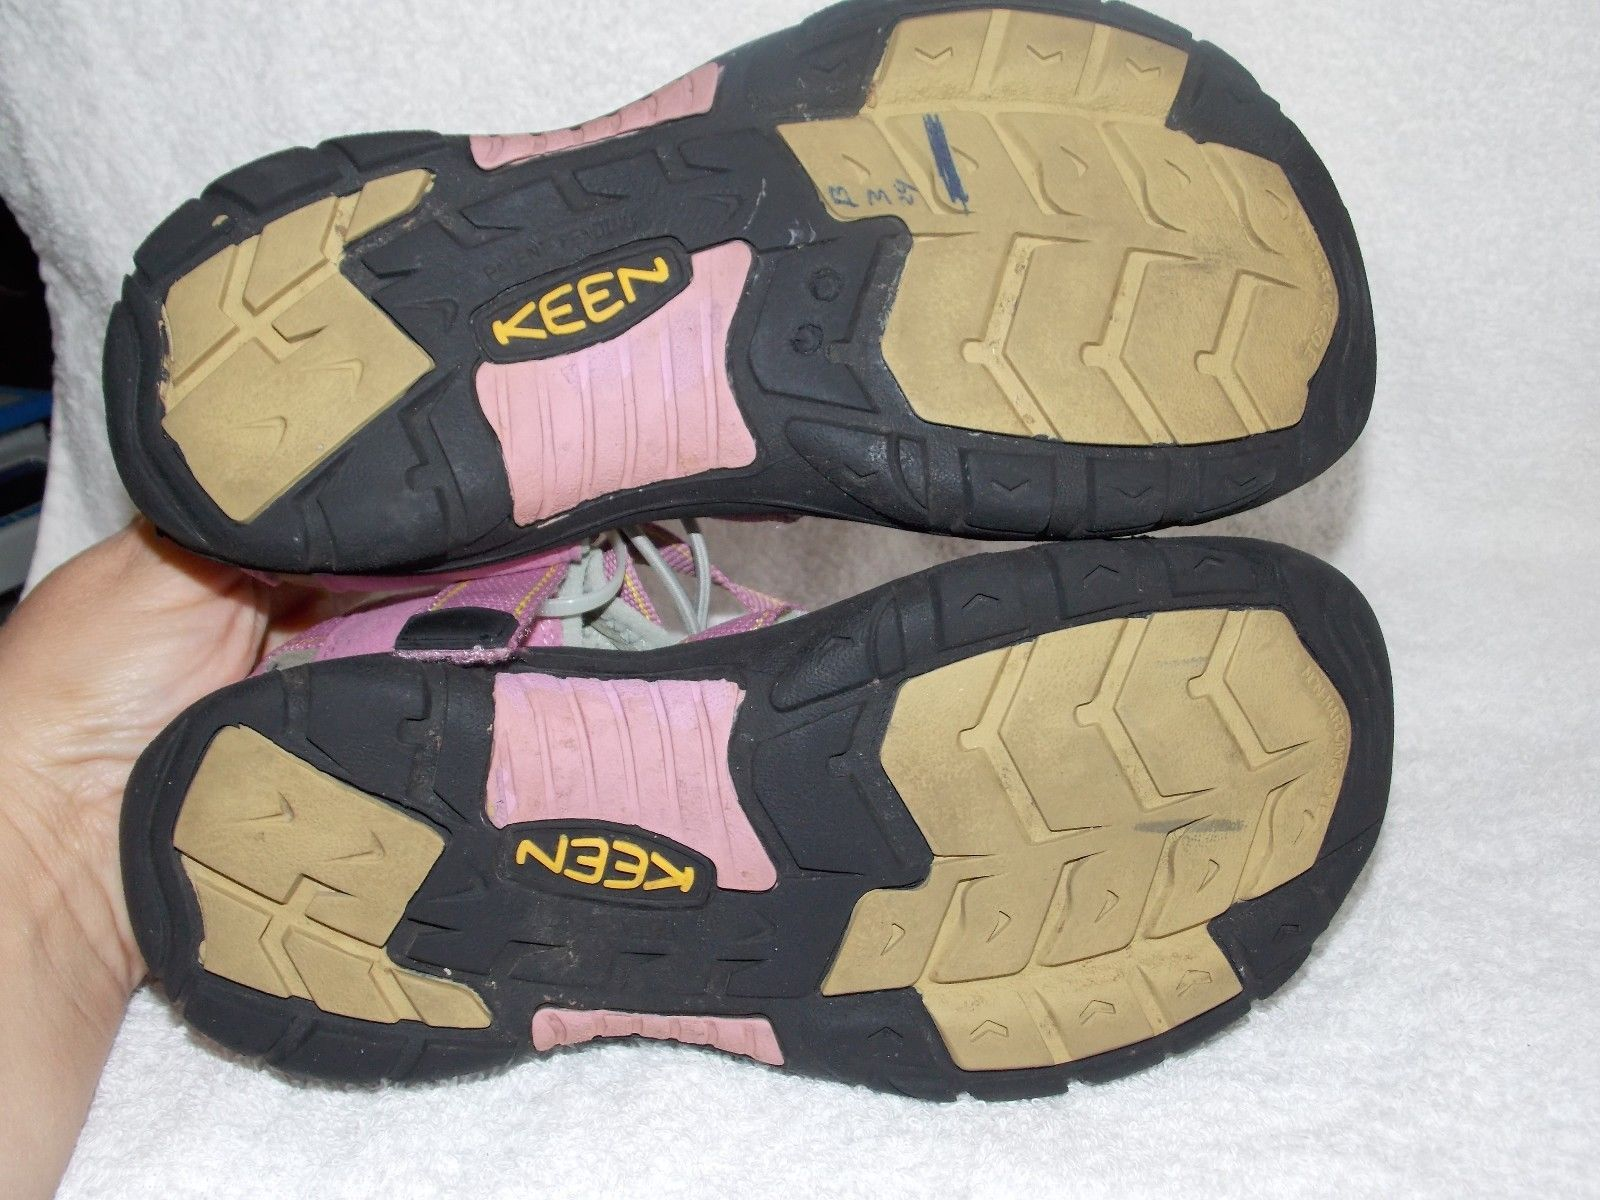 Keen Waterproof PINK/VIOLET Black Sport Hiking Trail Sandals 6 Used